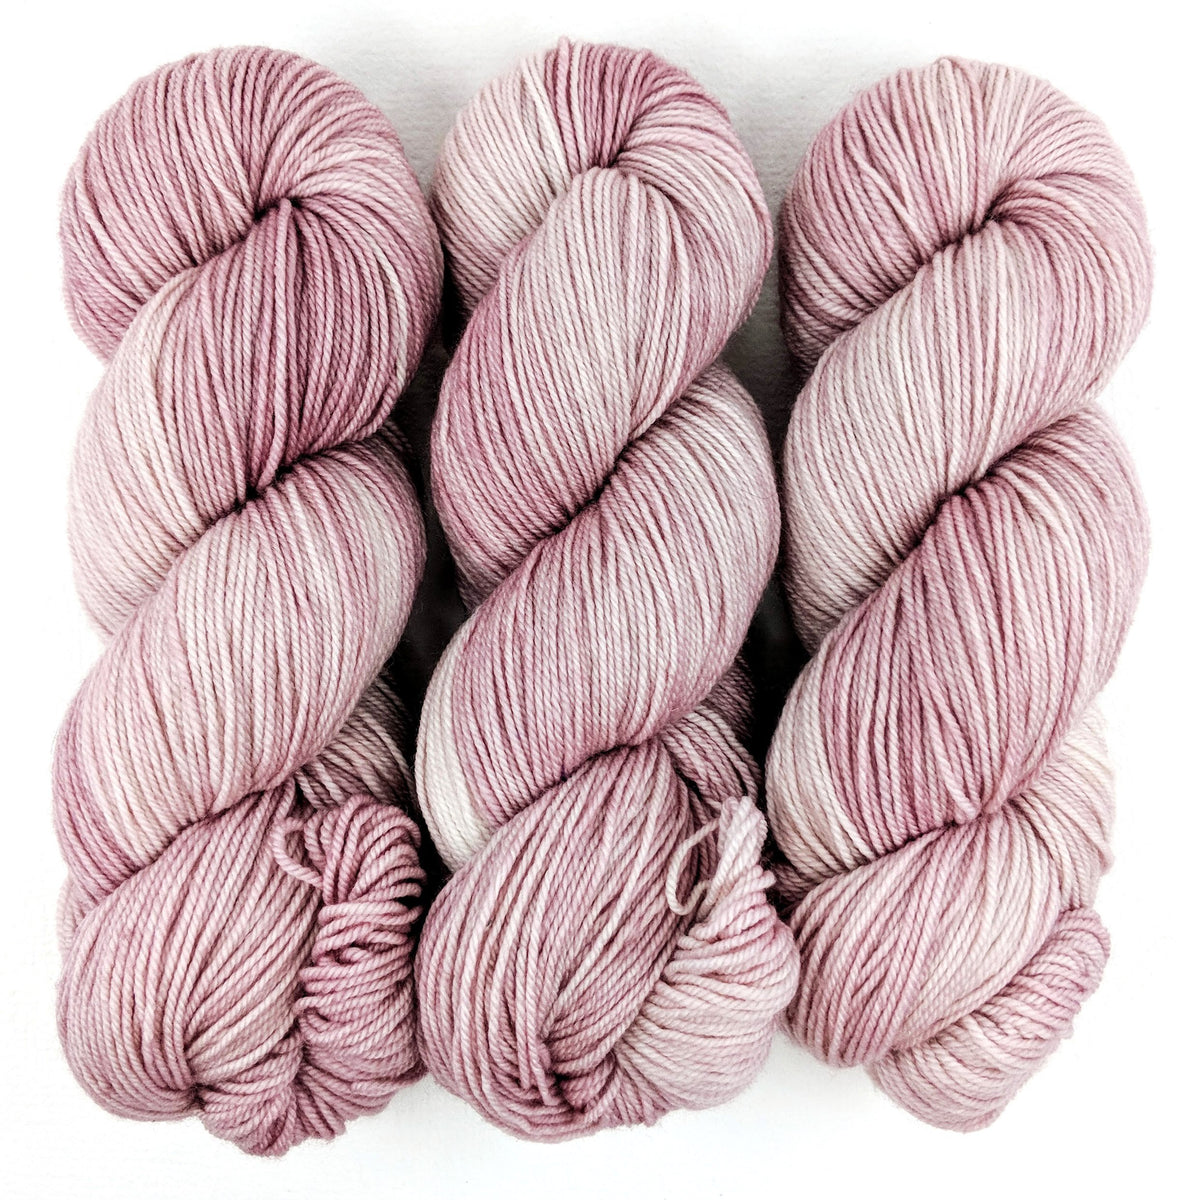 Apple Blossom in Fingering / Sock Weight